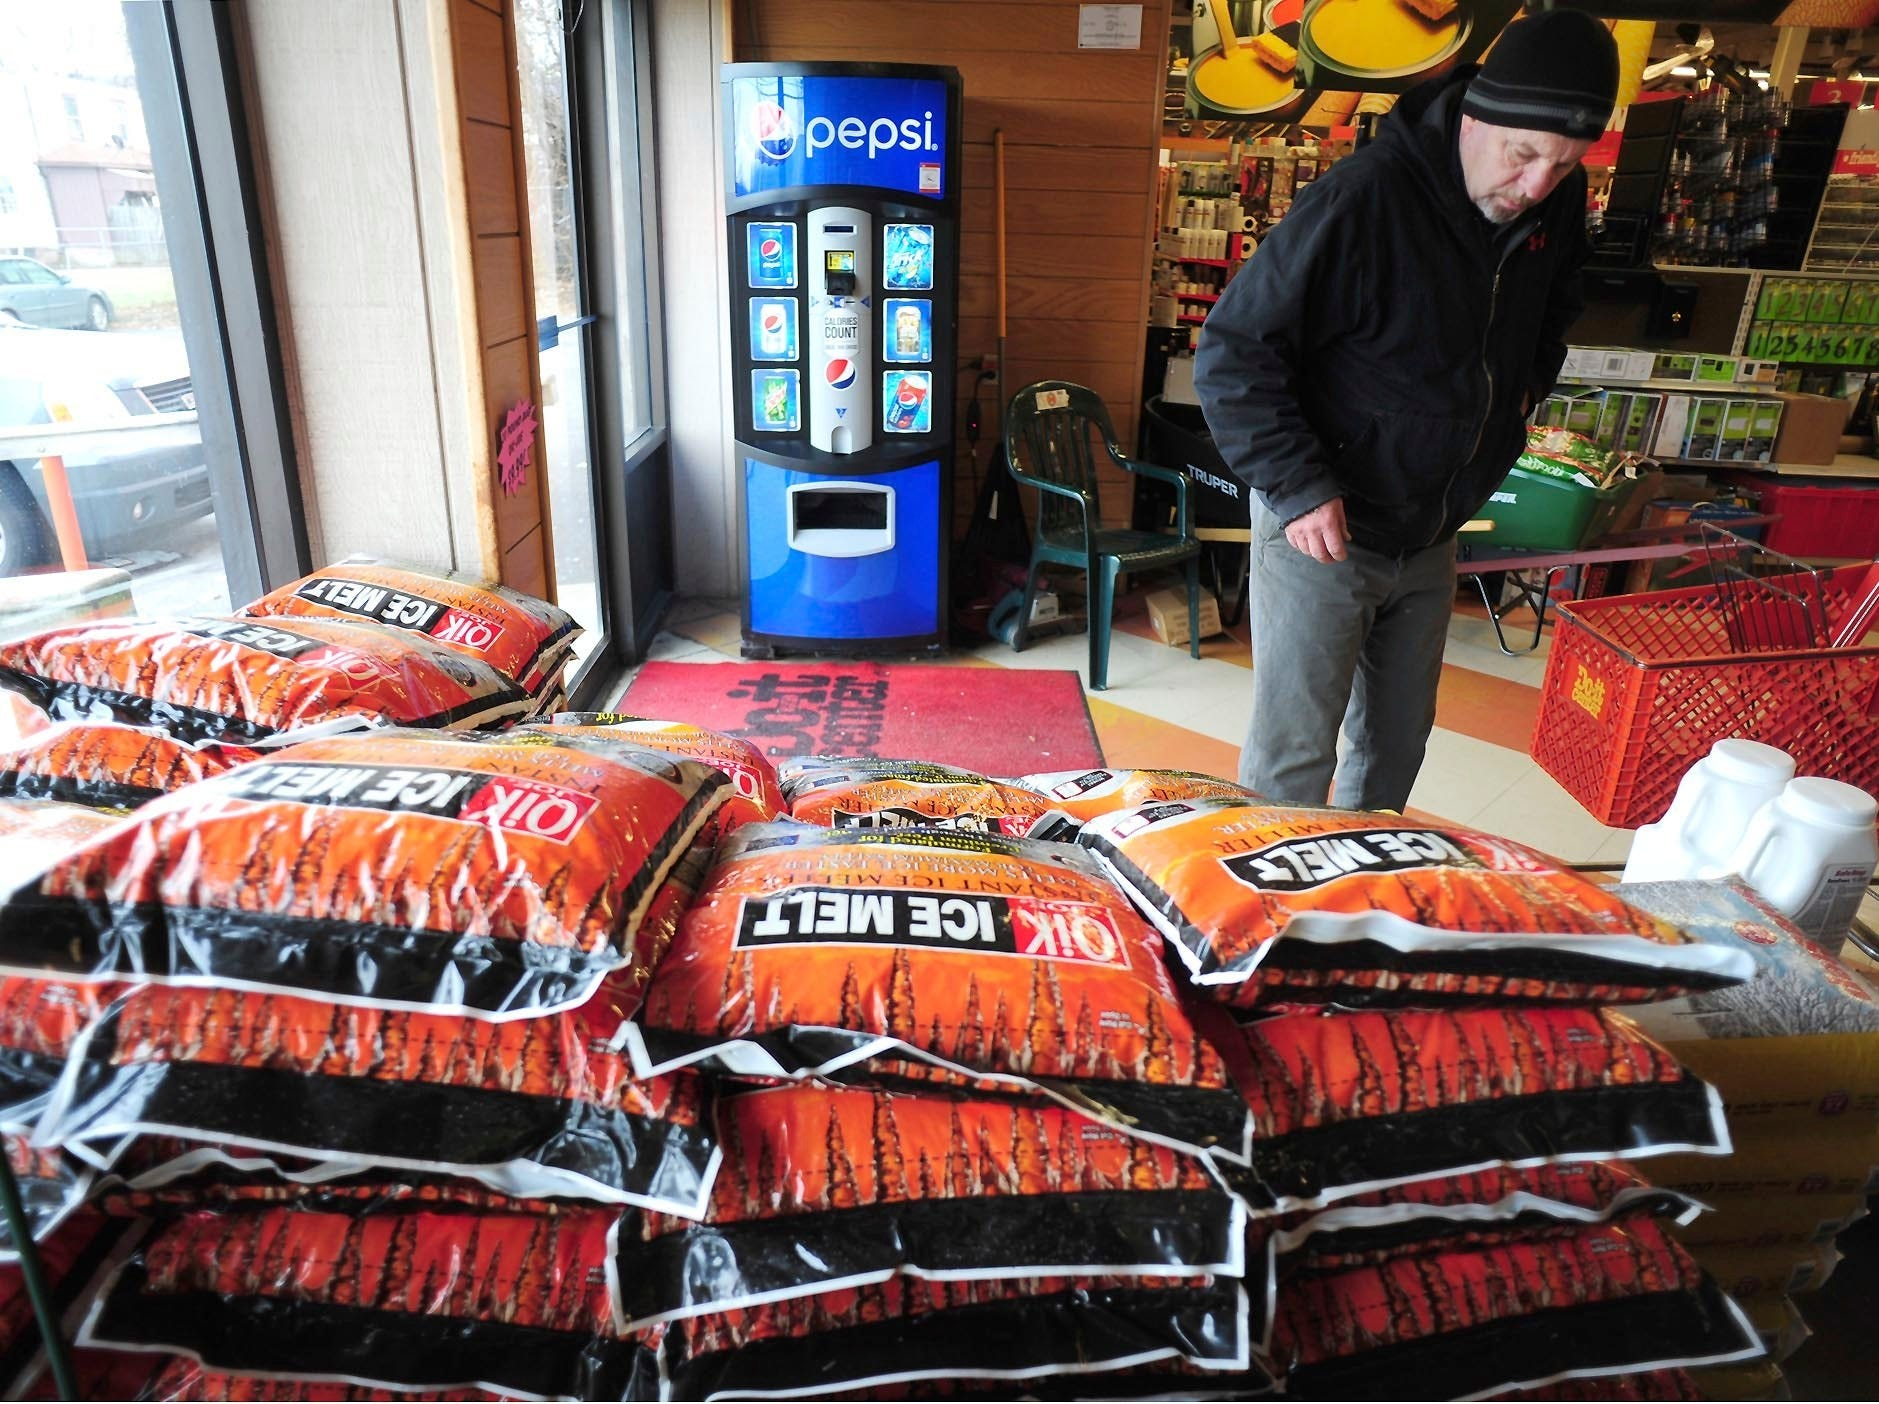 Customers purchase rock salt and ice melt Thursday, Jan. 17, 2019, at Walter's Hardware in Wilkes-Barre Township, Pa. Customers were also out purchasing rock salt and ice melt Thursday, in preparation for a forecasted weekend snow storm across Pennsylvania and surrounding states.